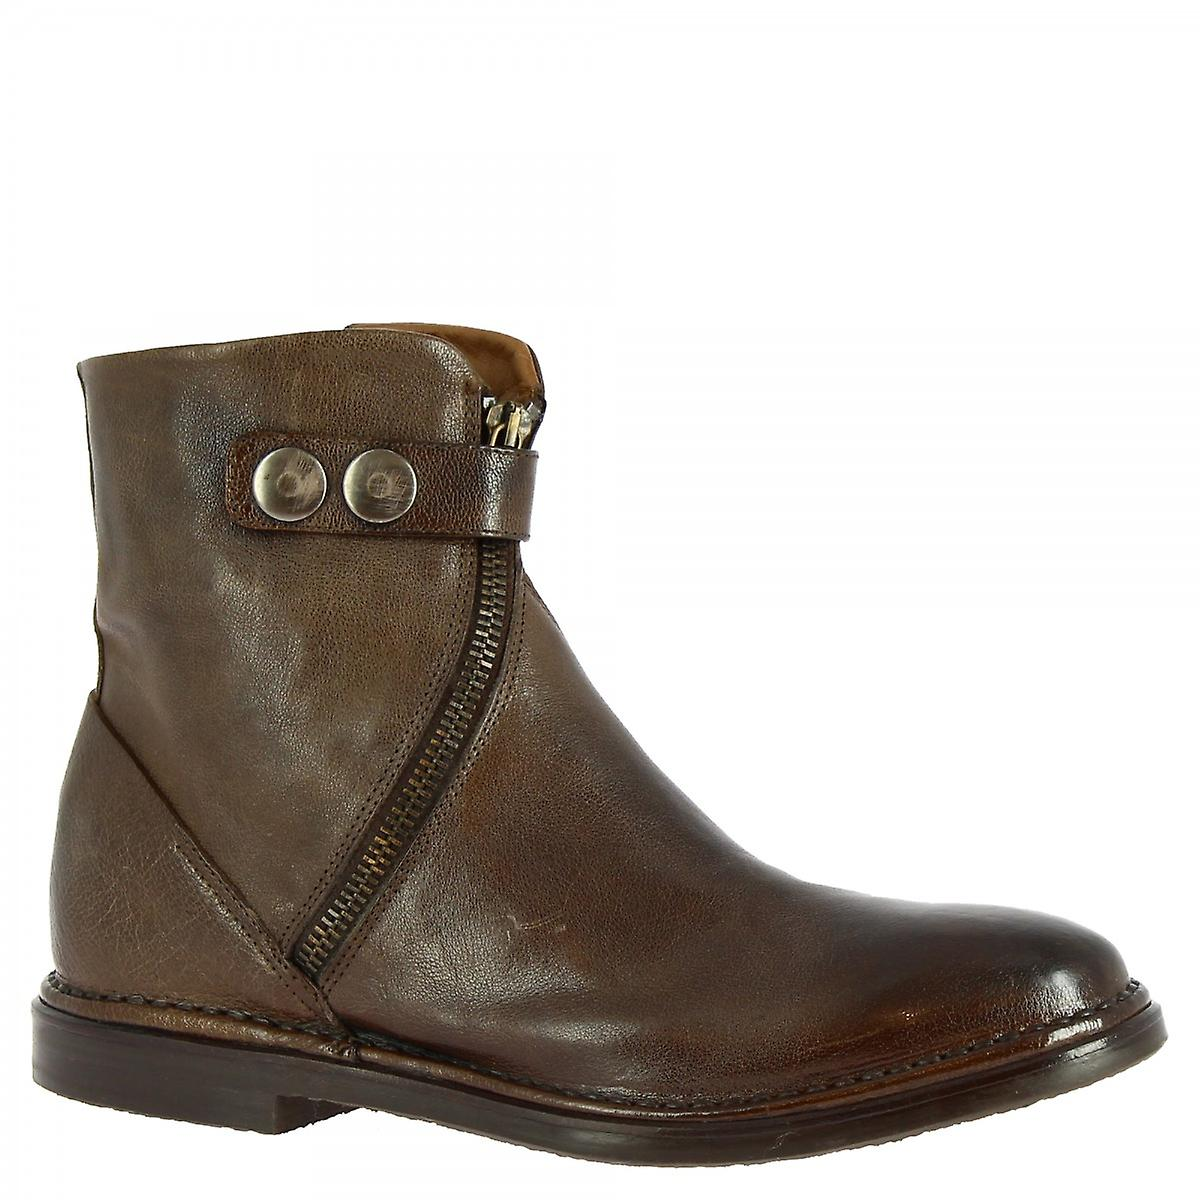 Leonardo Shoes Women's handmade ankle boots brown calf leather side zip and strap BZDXI